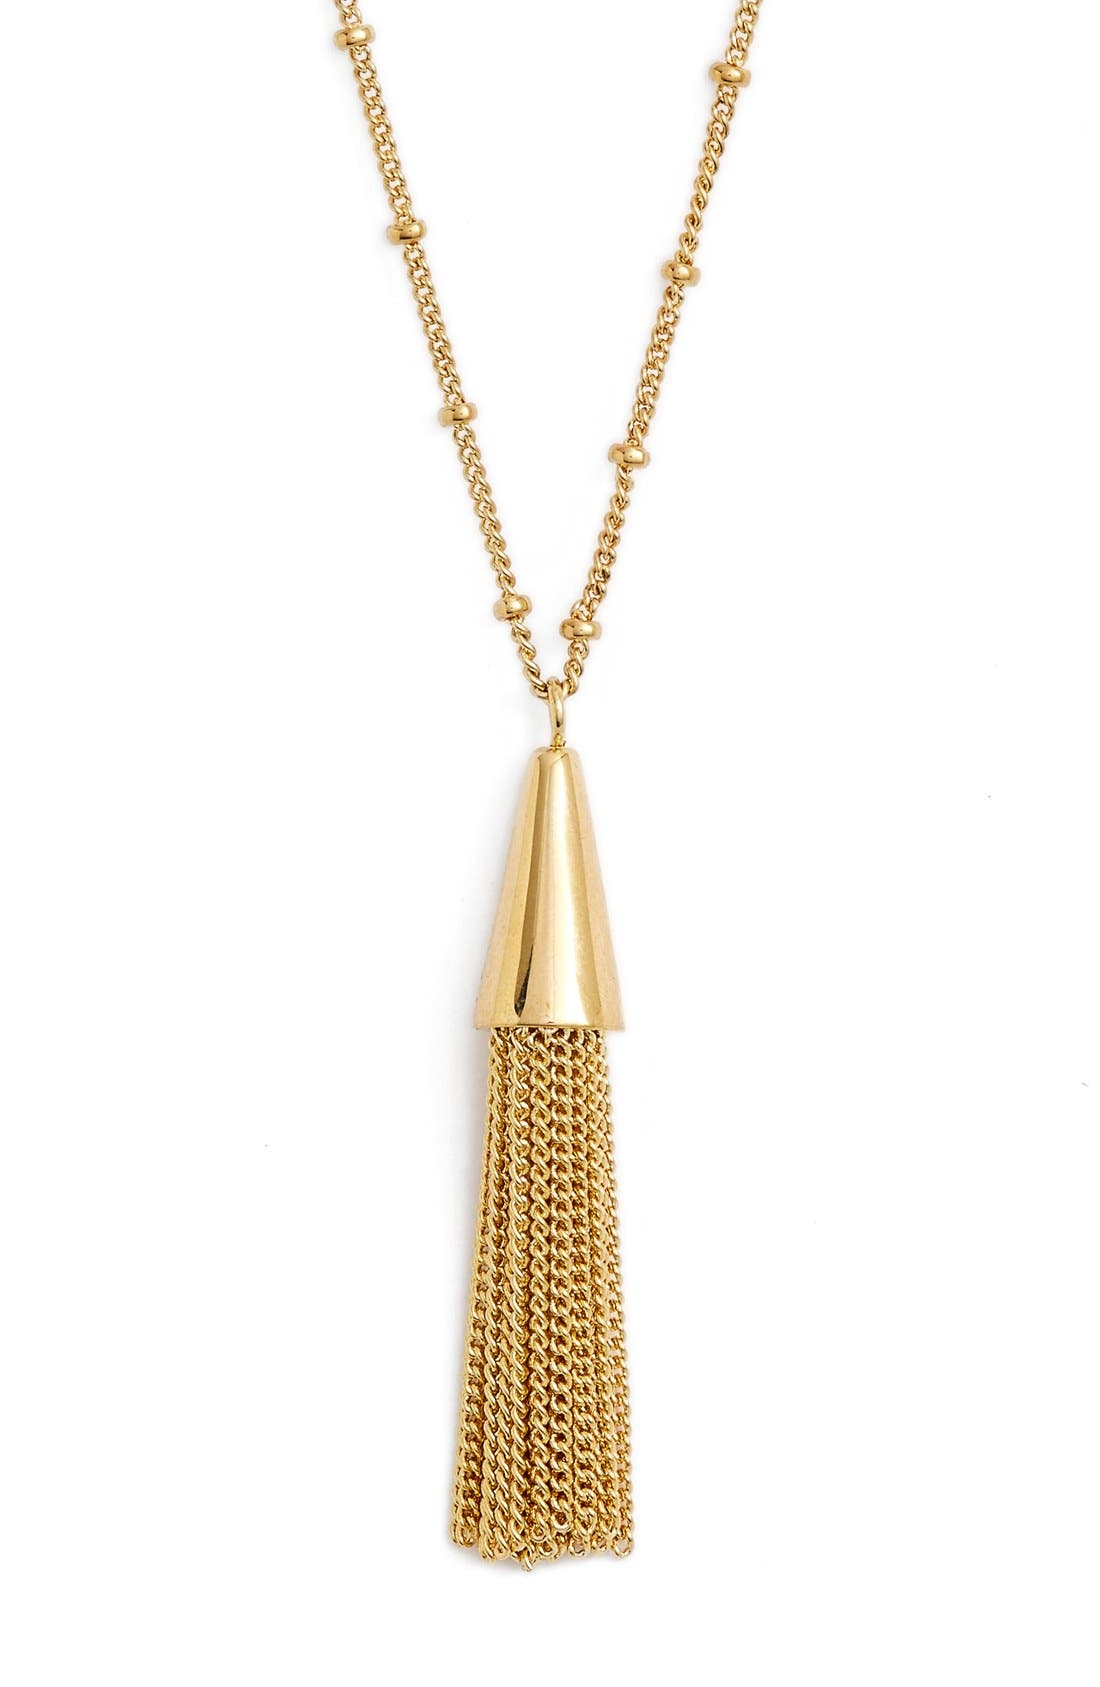 Alternate Image 1 Selected - Eddie Borgo Small Chain Tassel Pendant Necklace